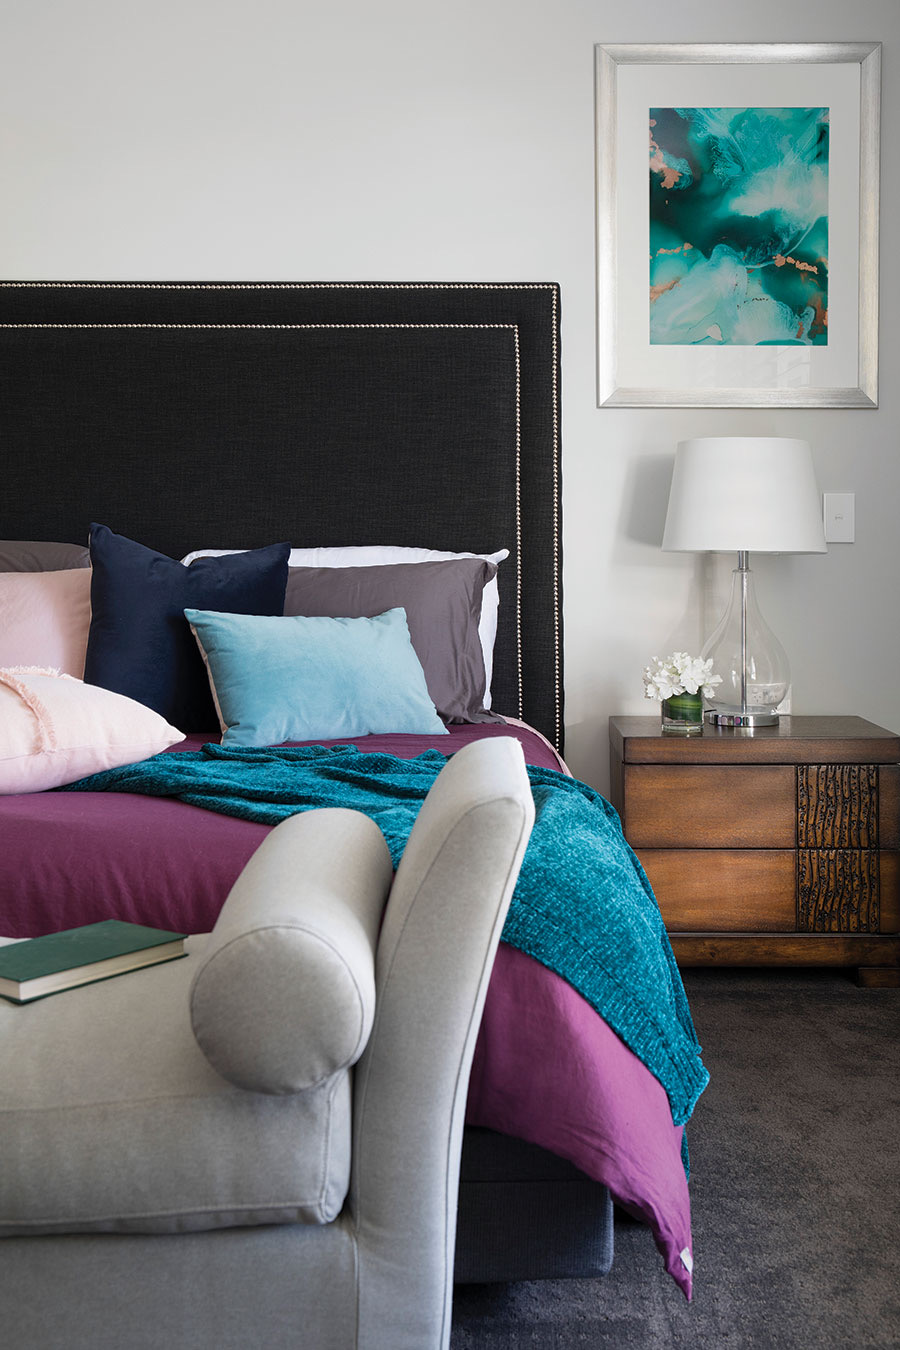 https://www.ivyandfinch.com.au/wp-content/uploads/2021/01/Interior-Design-Redland-Bay-Master-Bedroom.jpg